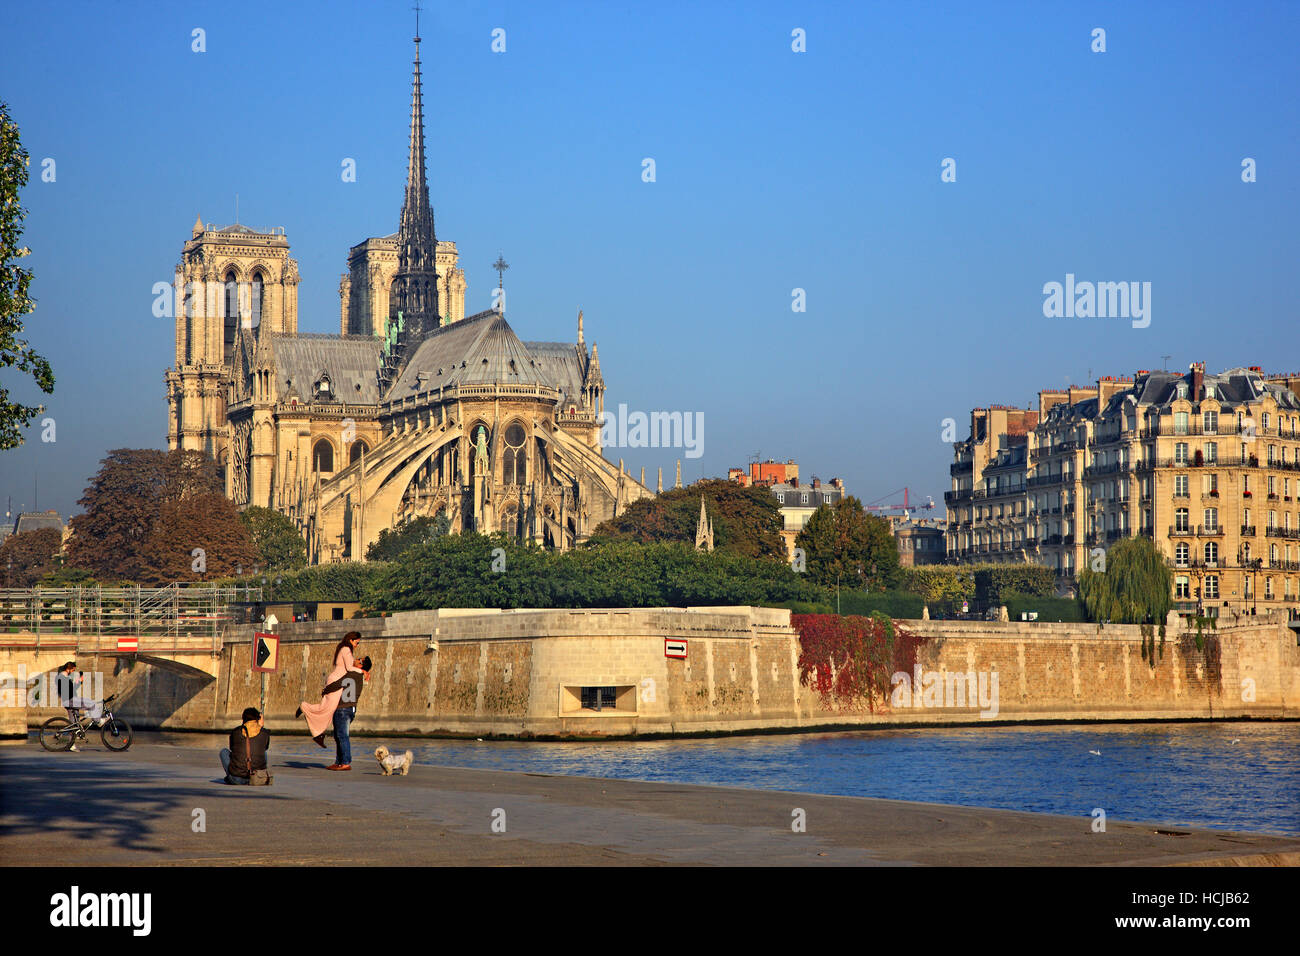 Couple getting photographed in front of The Notre Dame Cathedral, Paris, France. - Stock Image